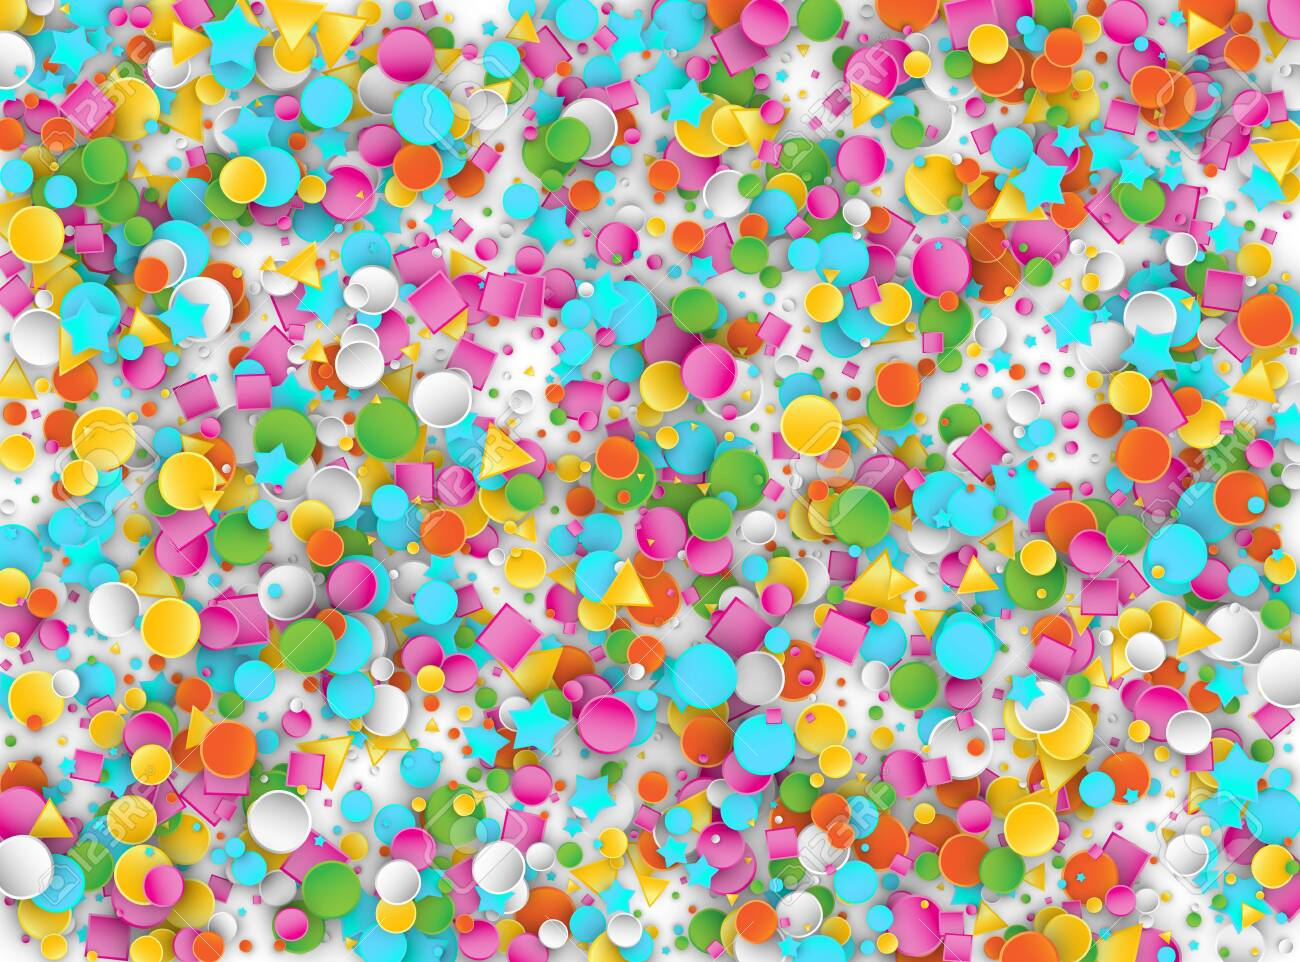 Colored Carnaval Confetti Explosion Background with Stars, Squares, Triangles, Circles. Abstract Geometric Shapes 3d Vector Pattern for Birthday and Party Design - 122120328